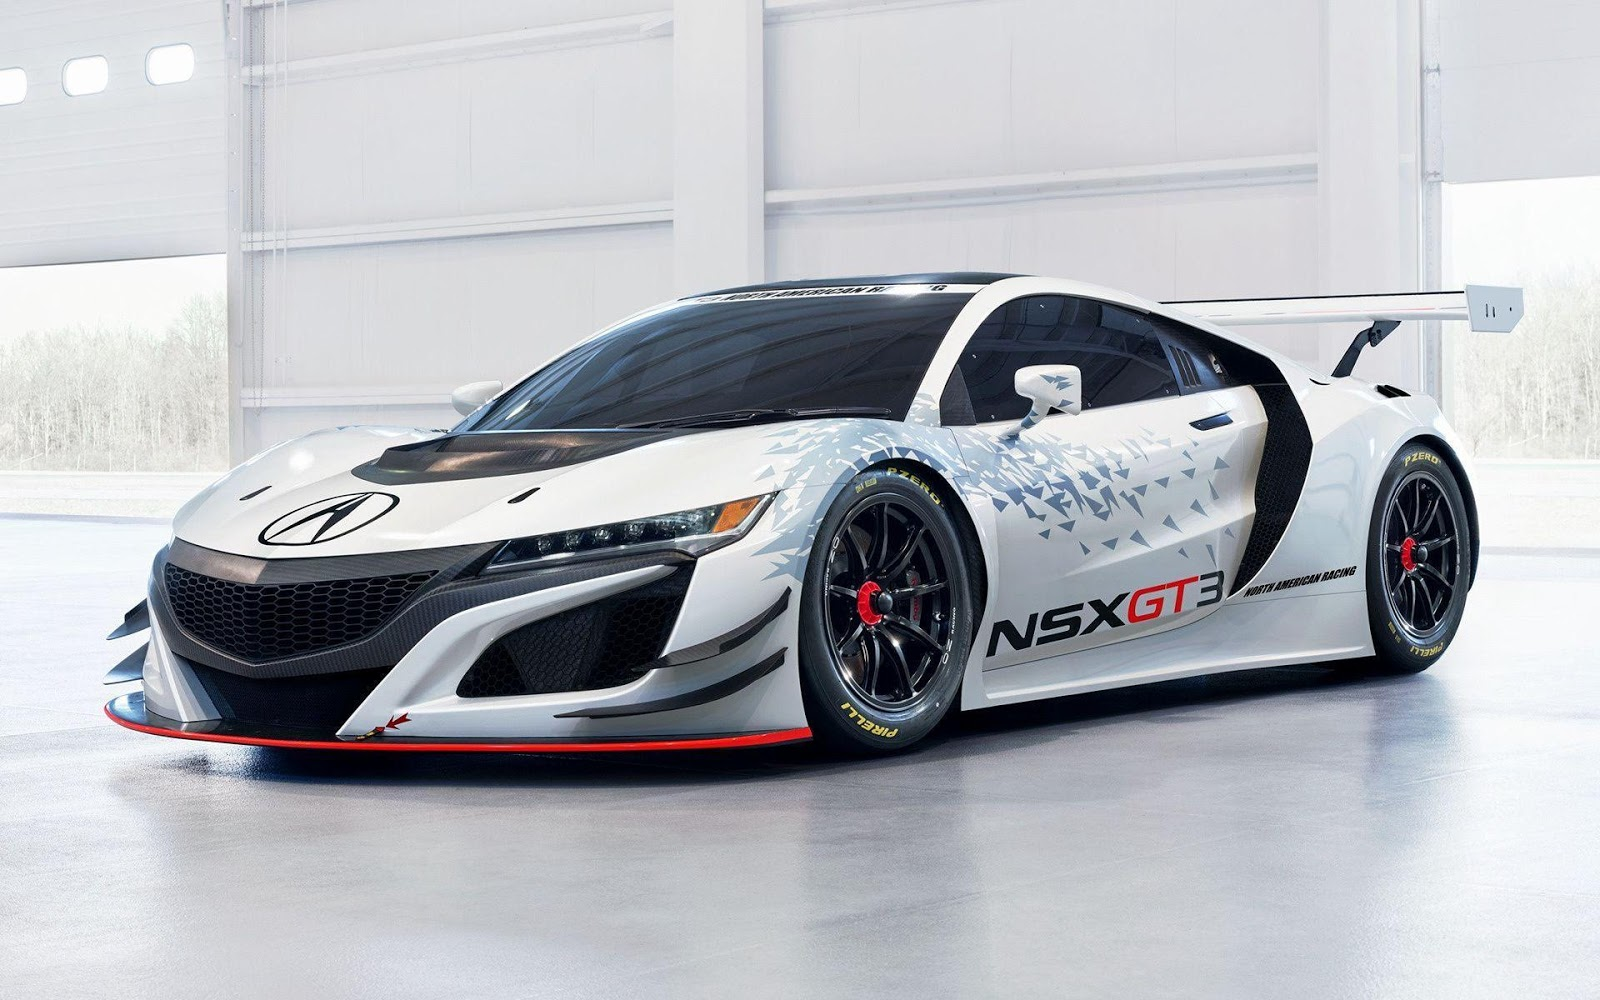 Acura NSX GT3 car wallpapers hd